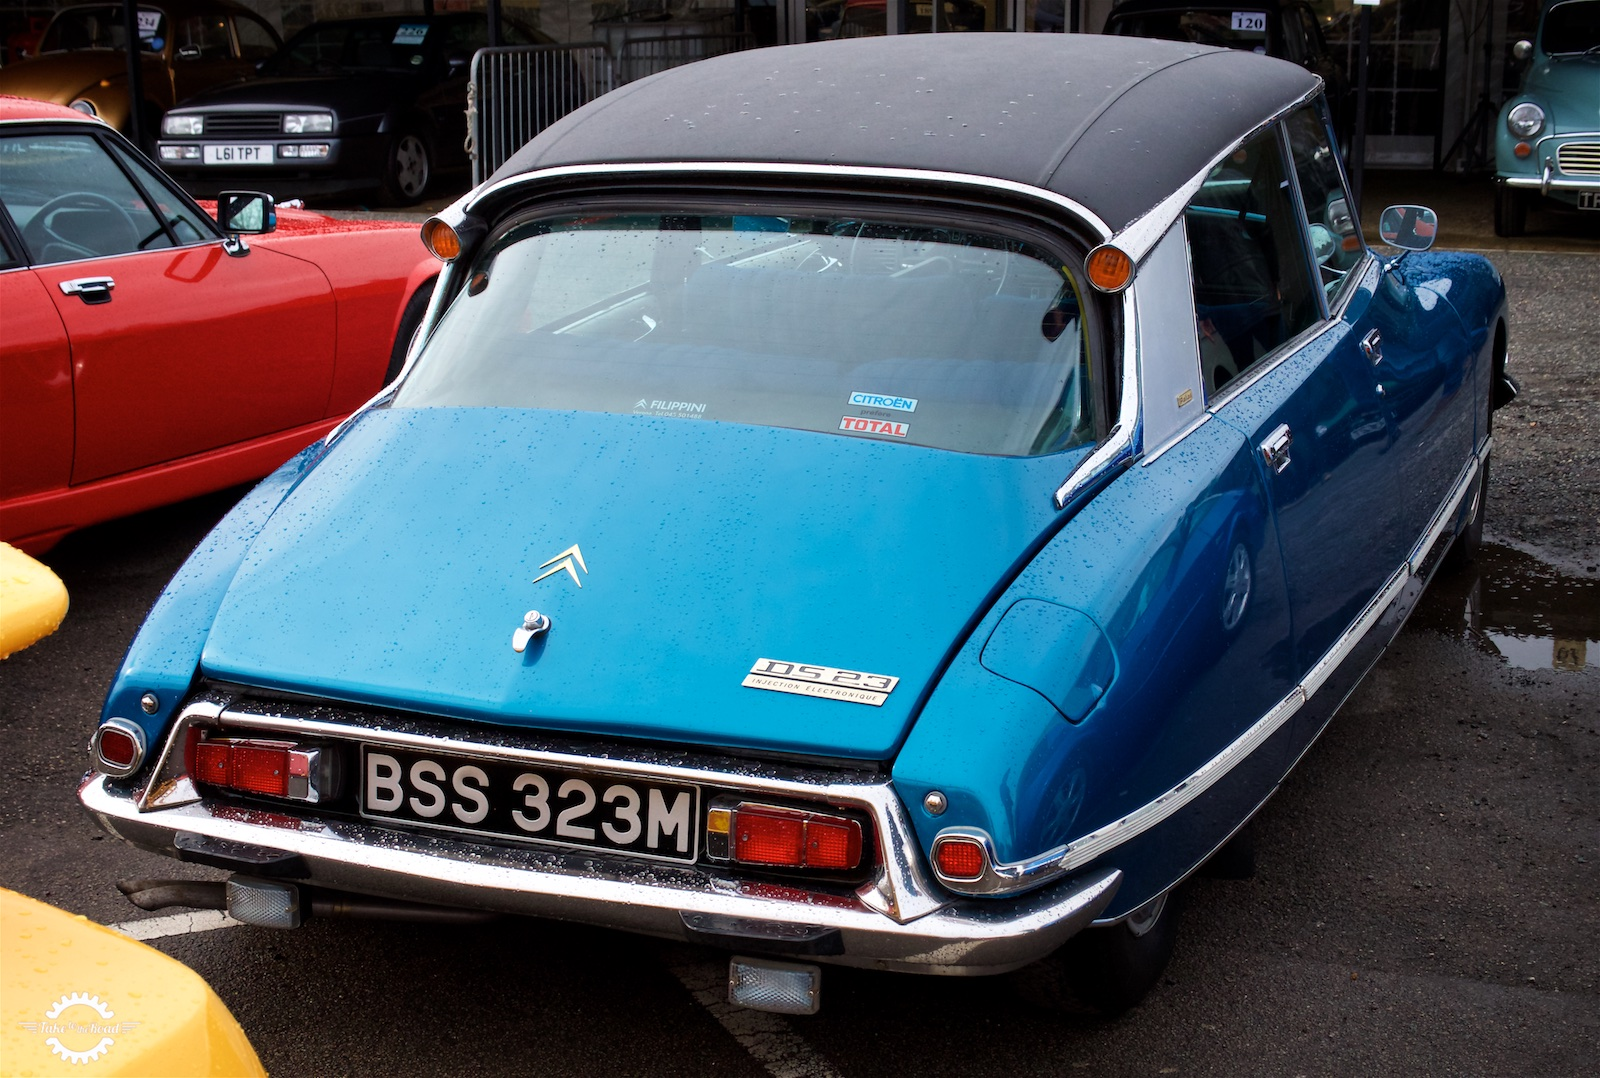 5 tips for looking after your classic car from Redex